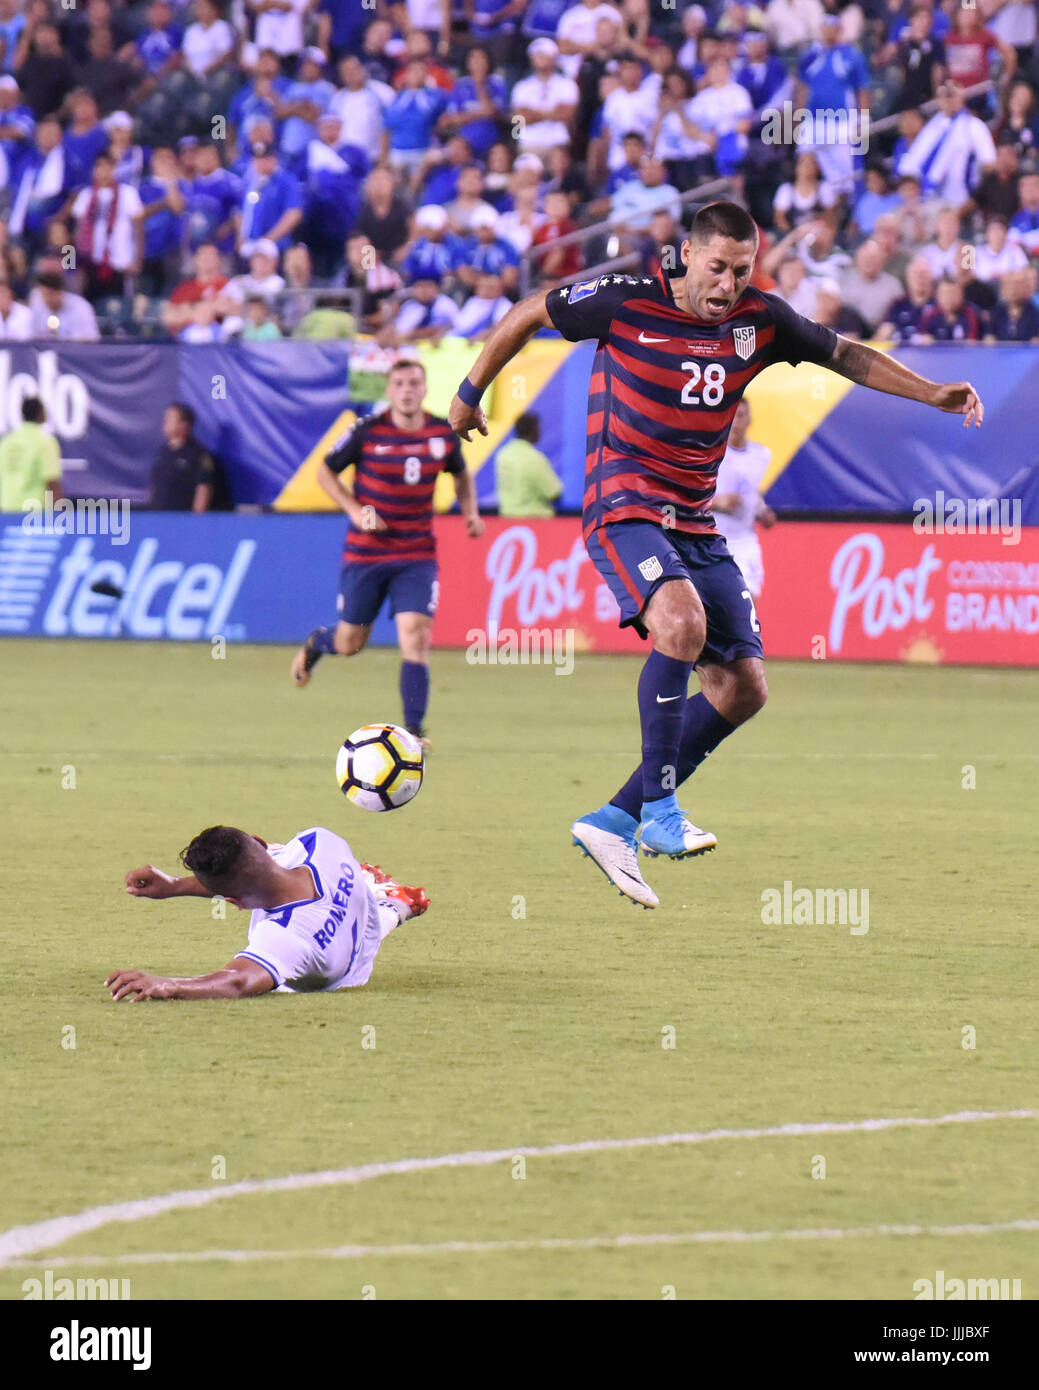 Clint Dempsey of the USMNT United States Mens National Team leaps over a tackle from Henry Romero during a soccer - Stock Image